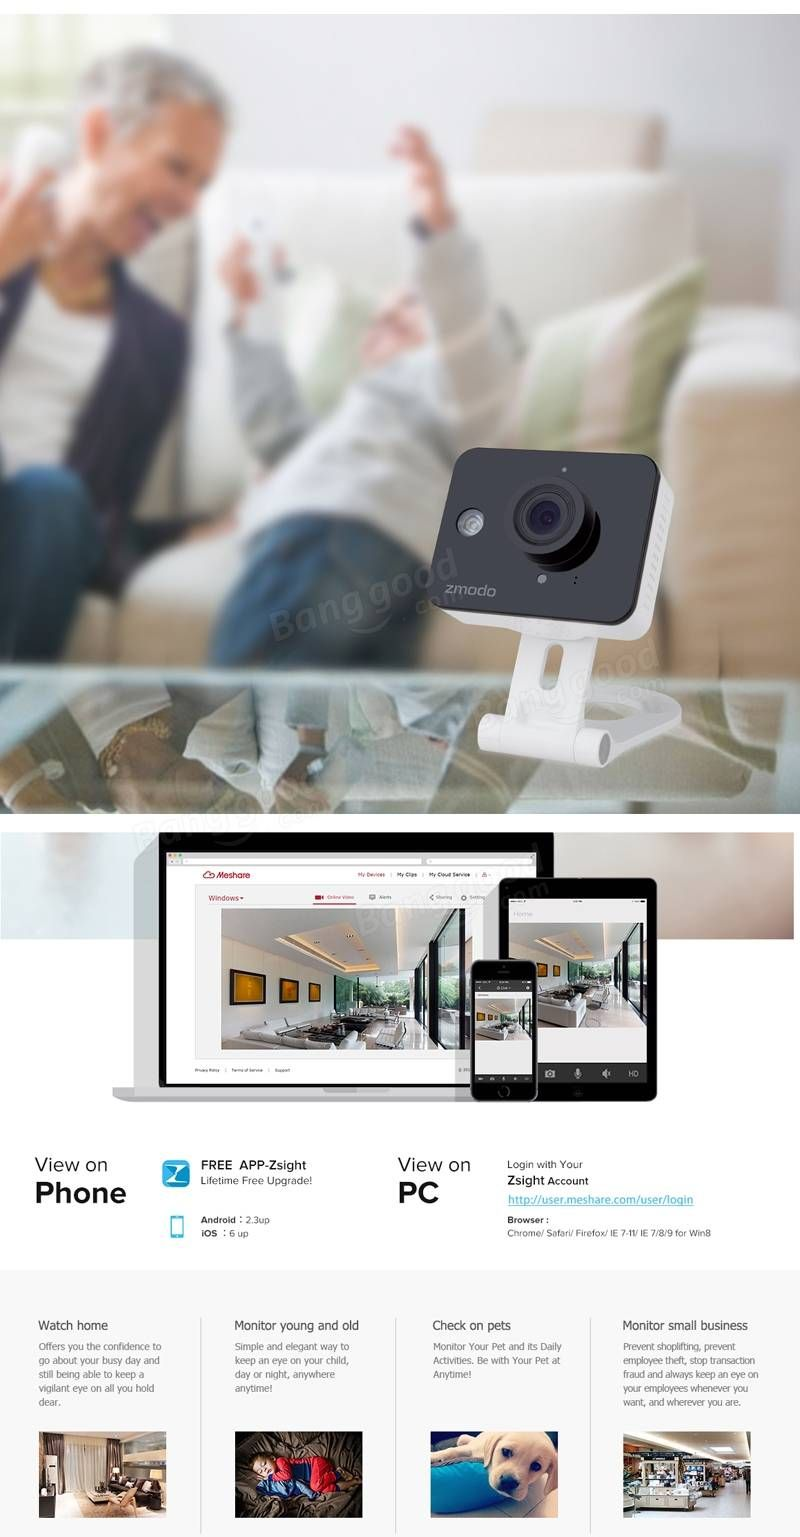 Zmodo 720P Mini Wireless Security Camera HD WiFi IP Camera